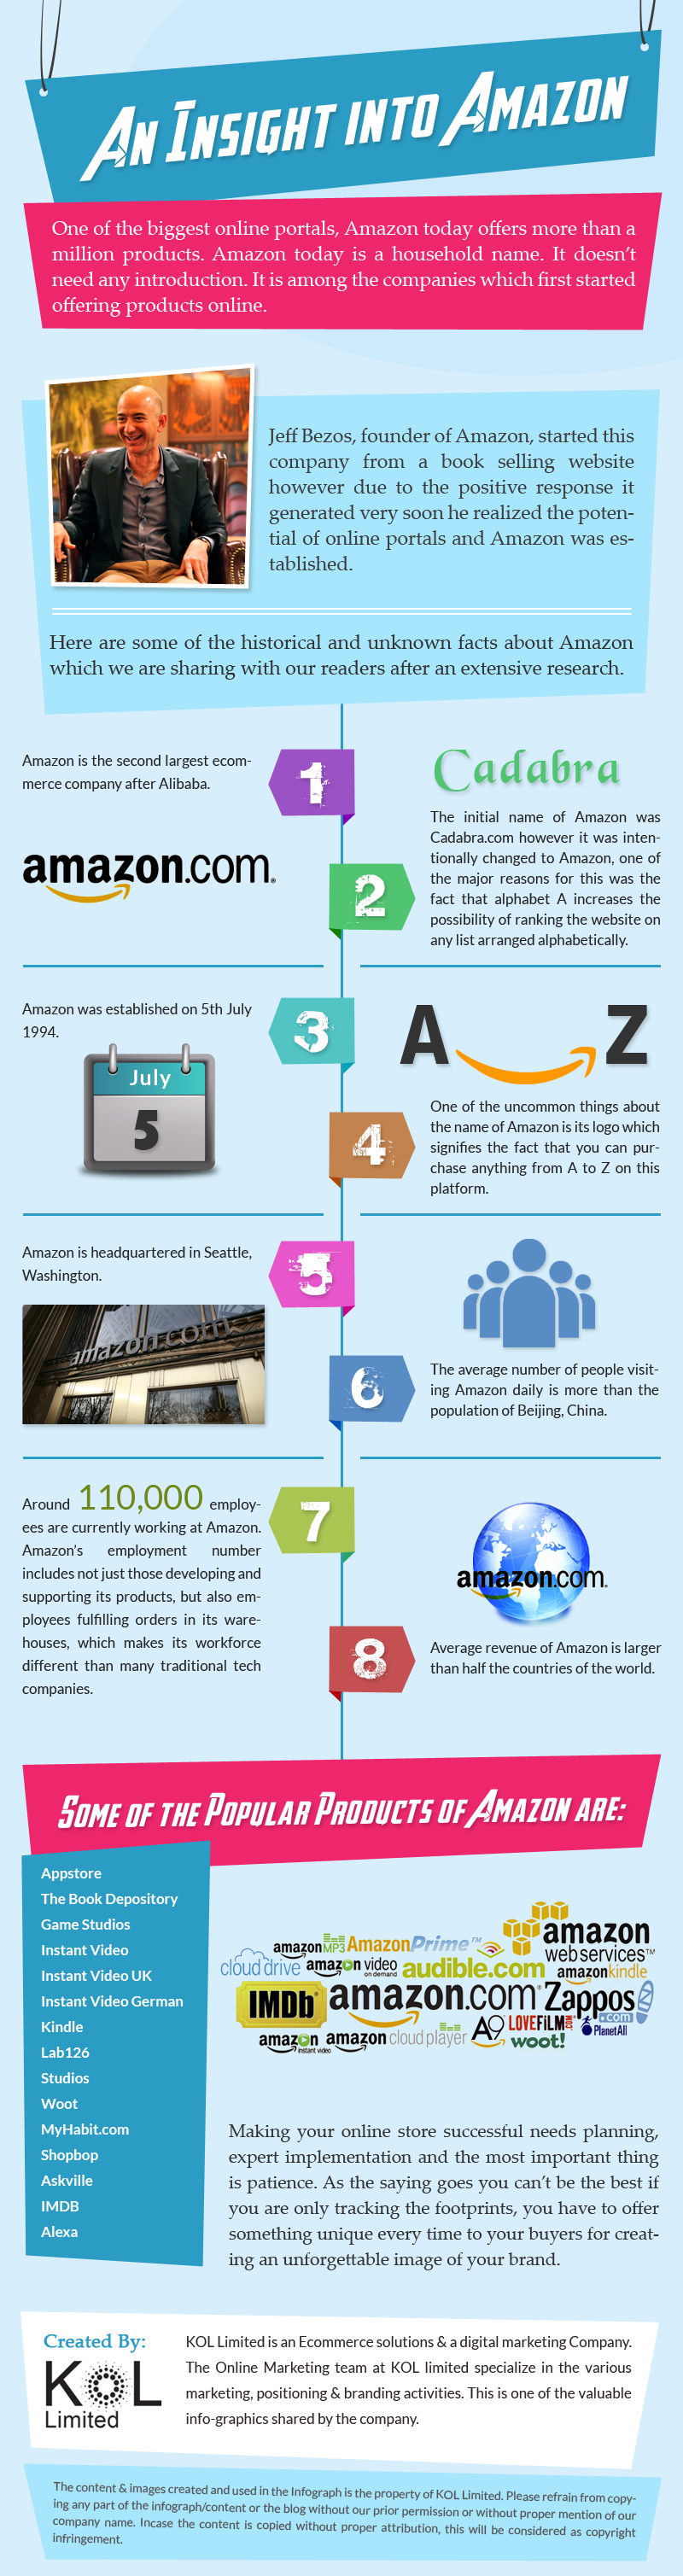 An-Insight-Into-Amazon-Infographic